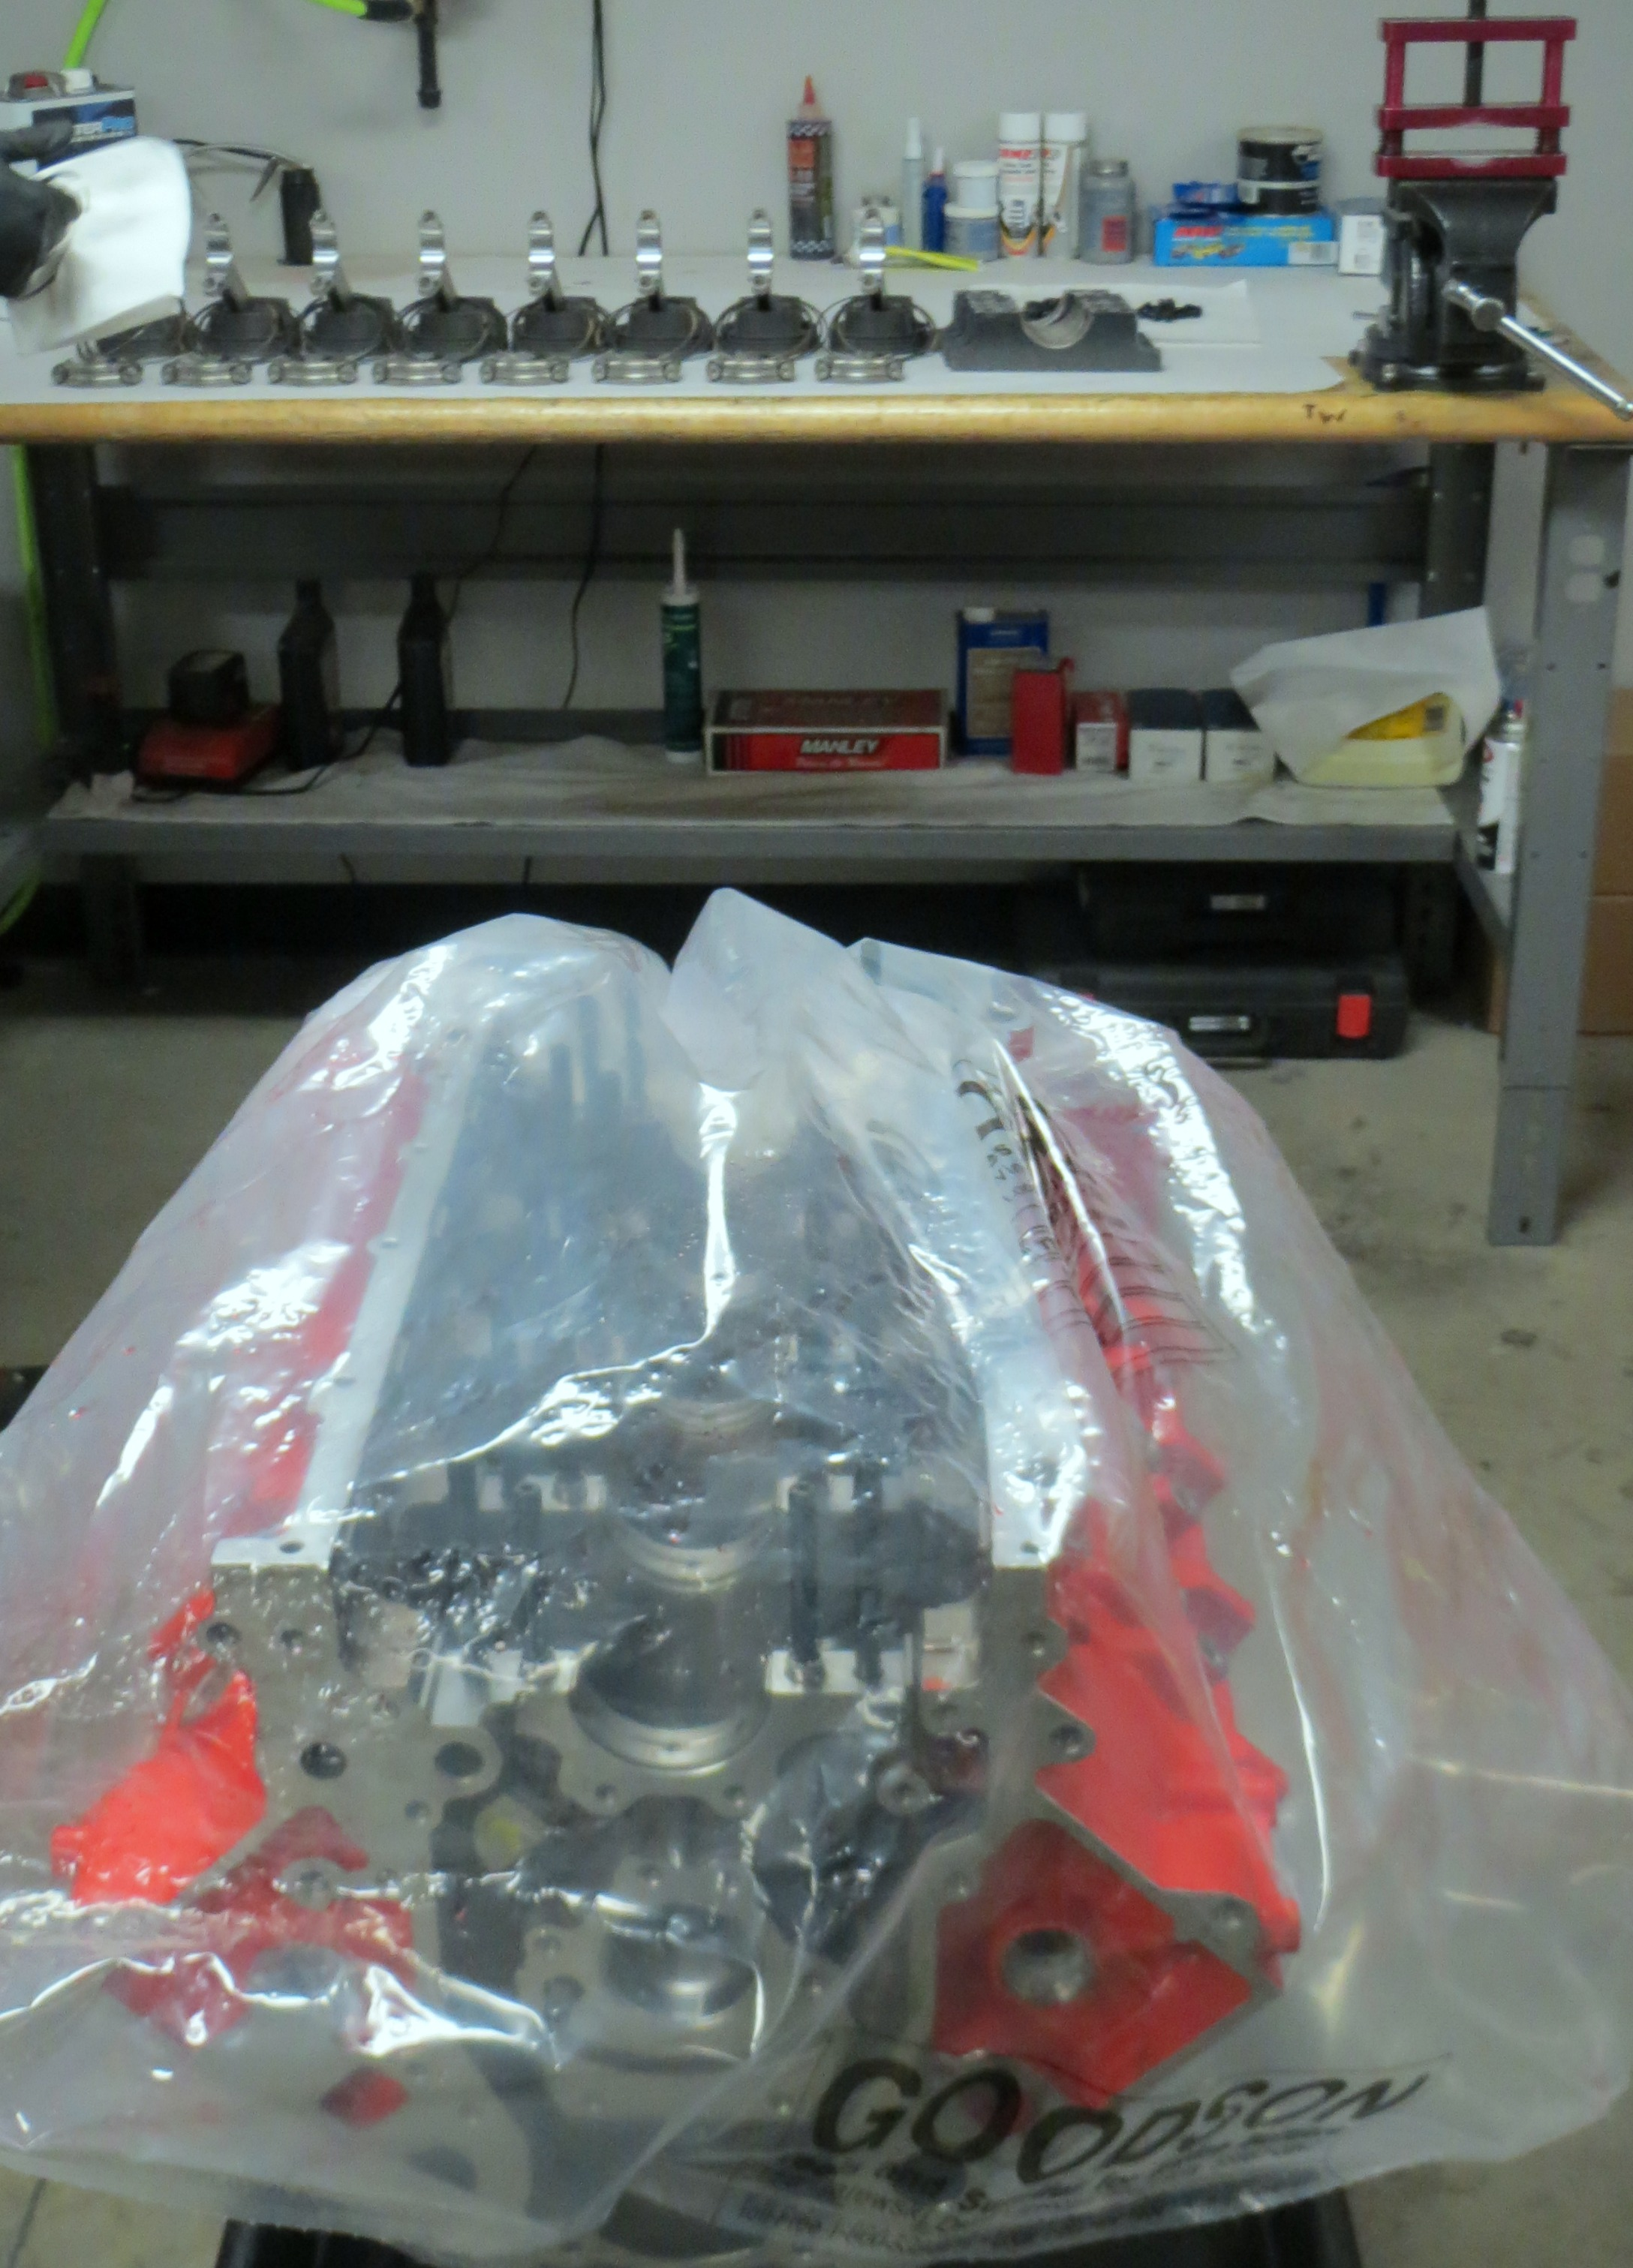 LSX 440 ready to build